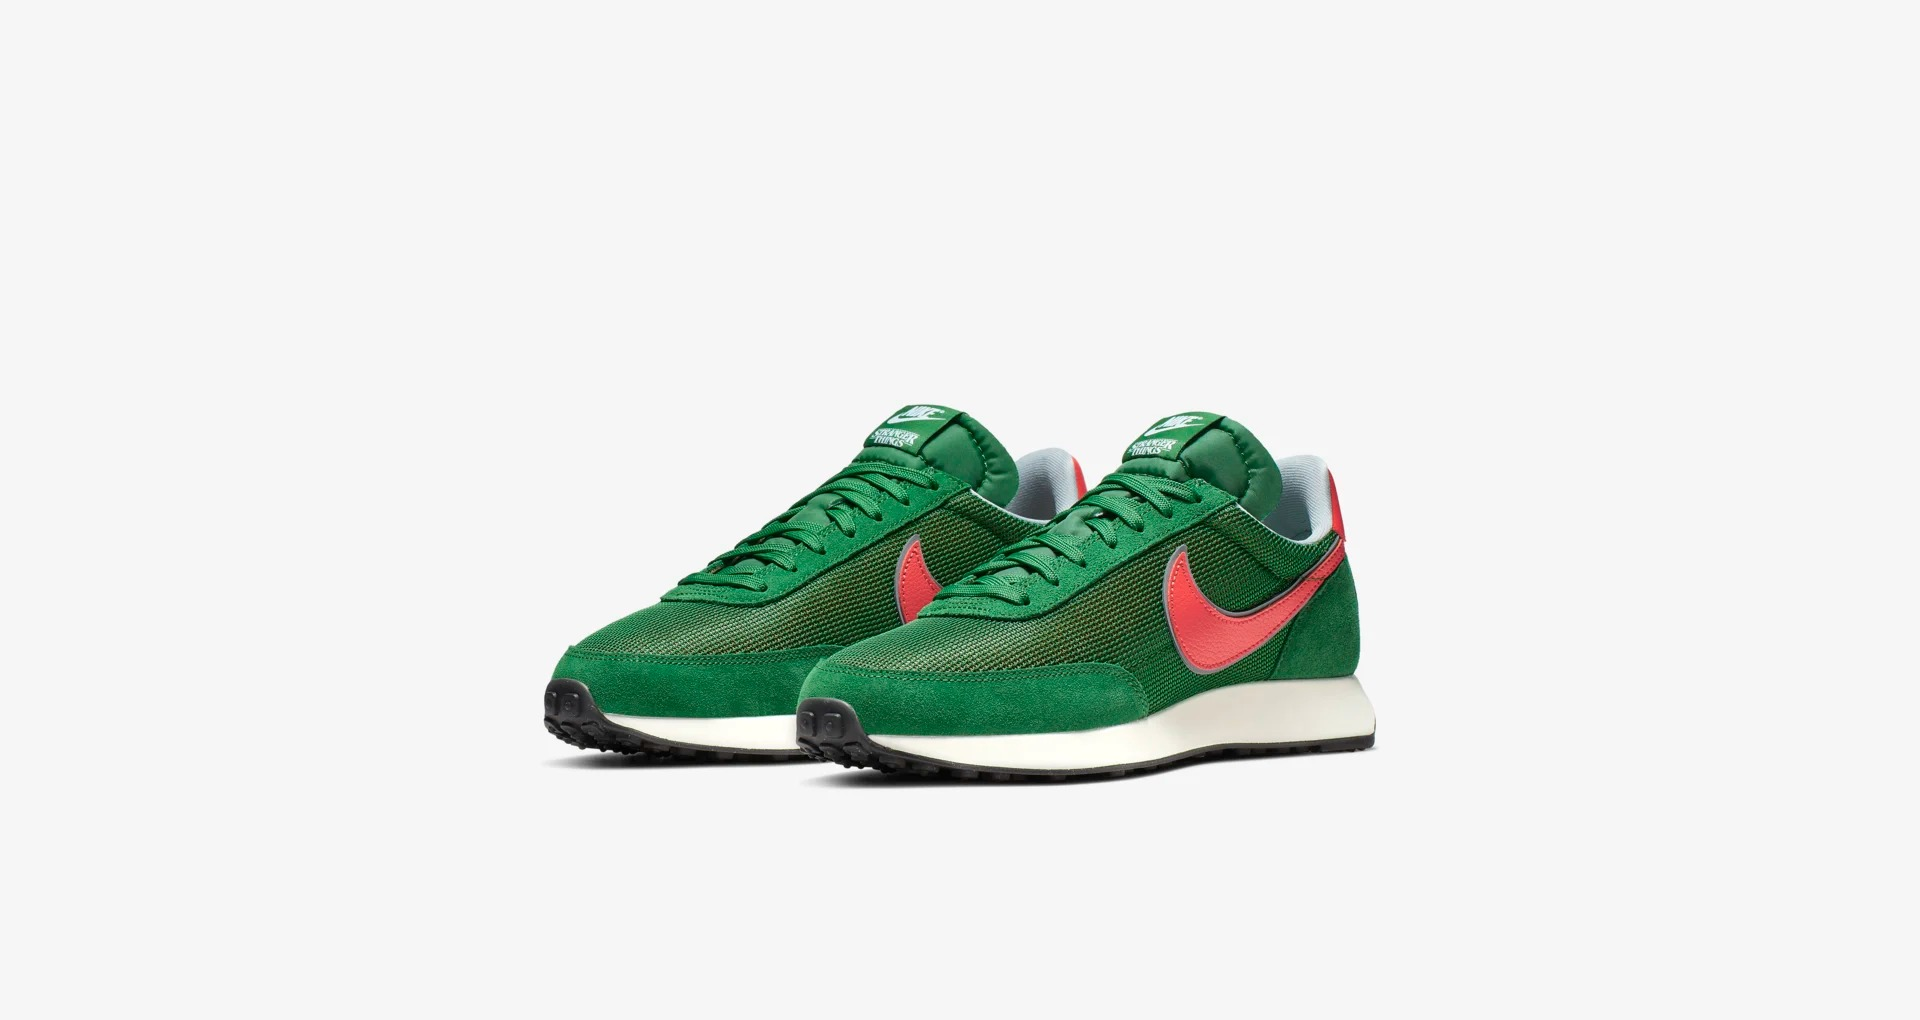 CJ6108 300 Stranger Things x Nike Air Tailwind 5